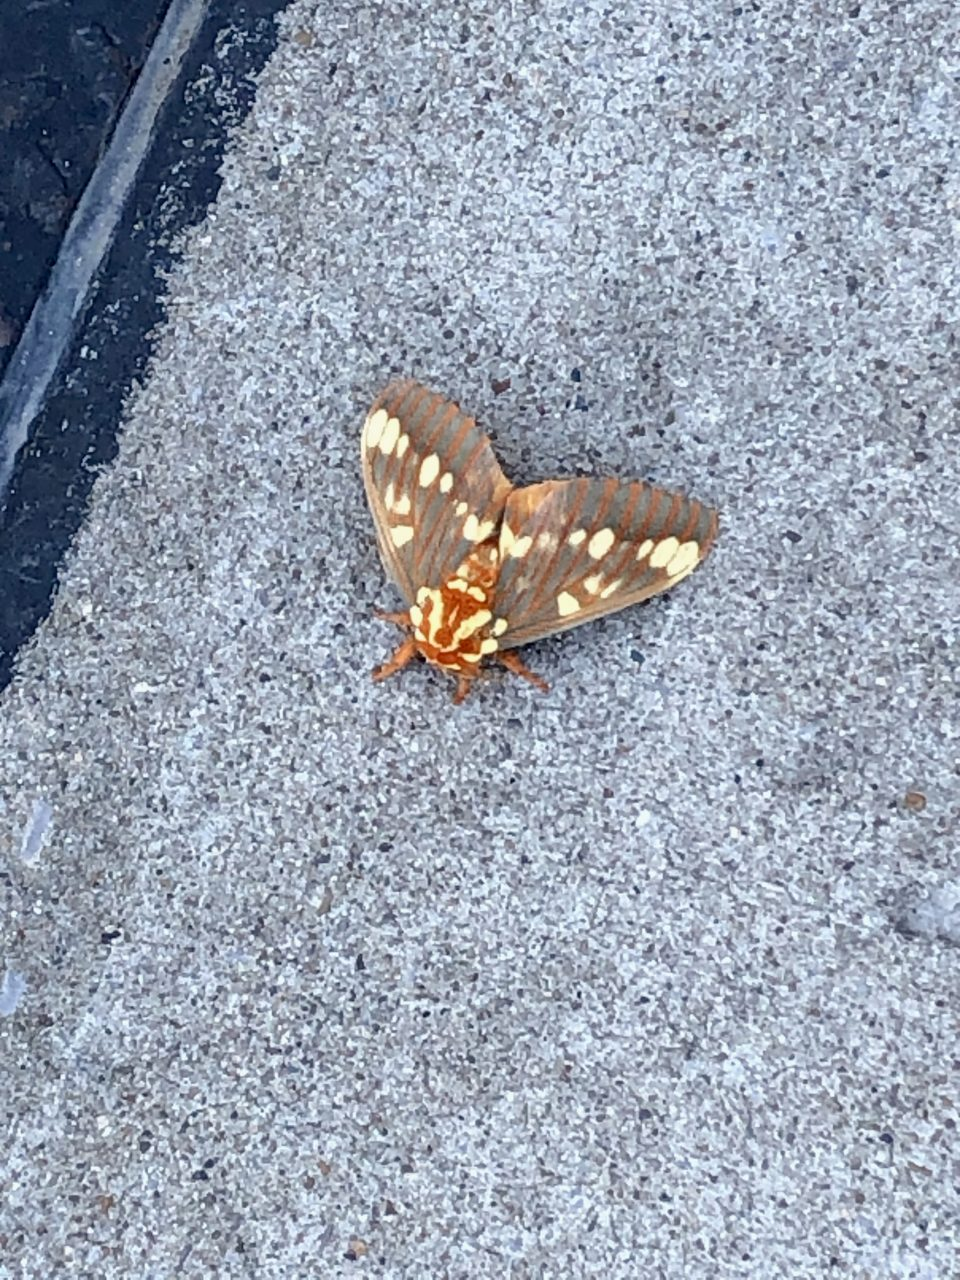 Zoomed photograph of the Royal Walnut Moth shot on my cell phone.